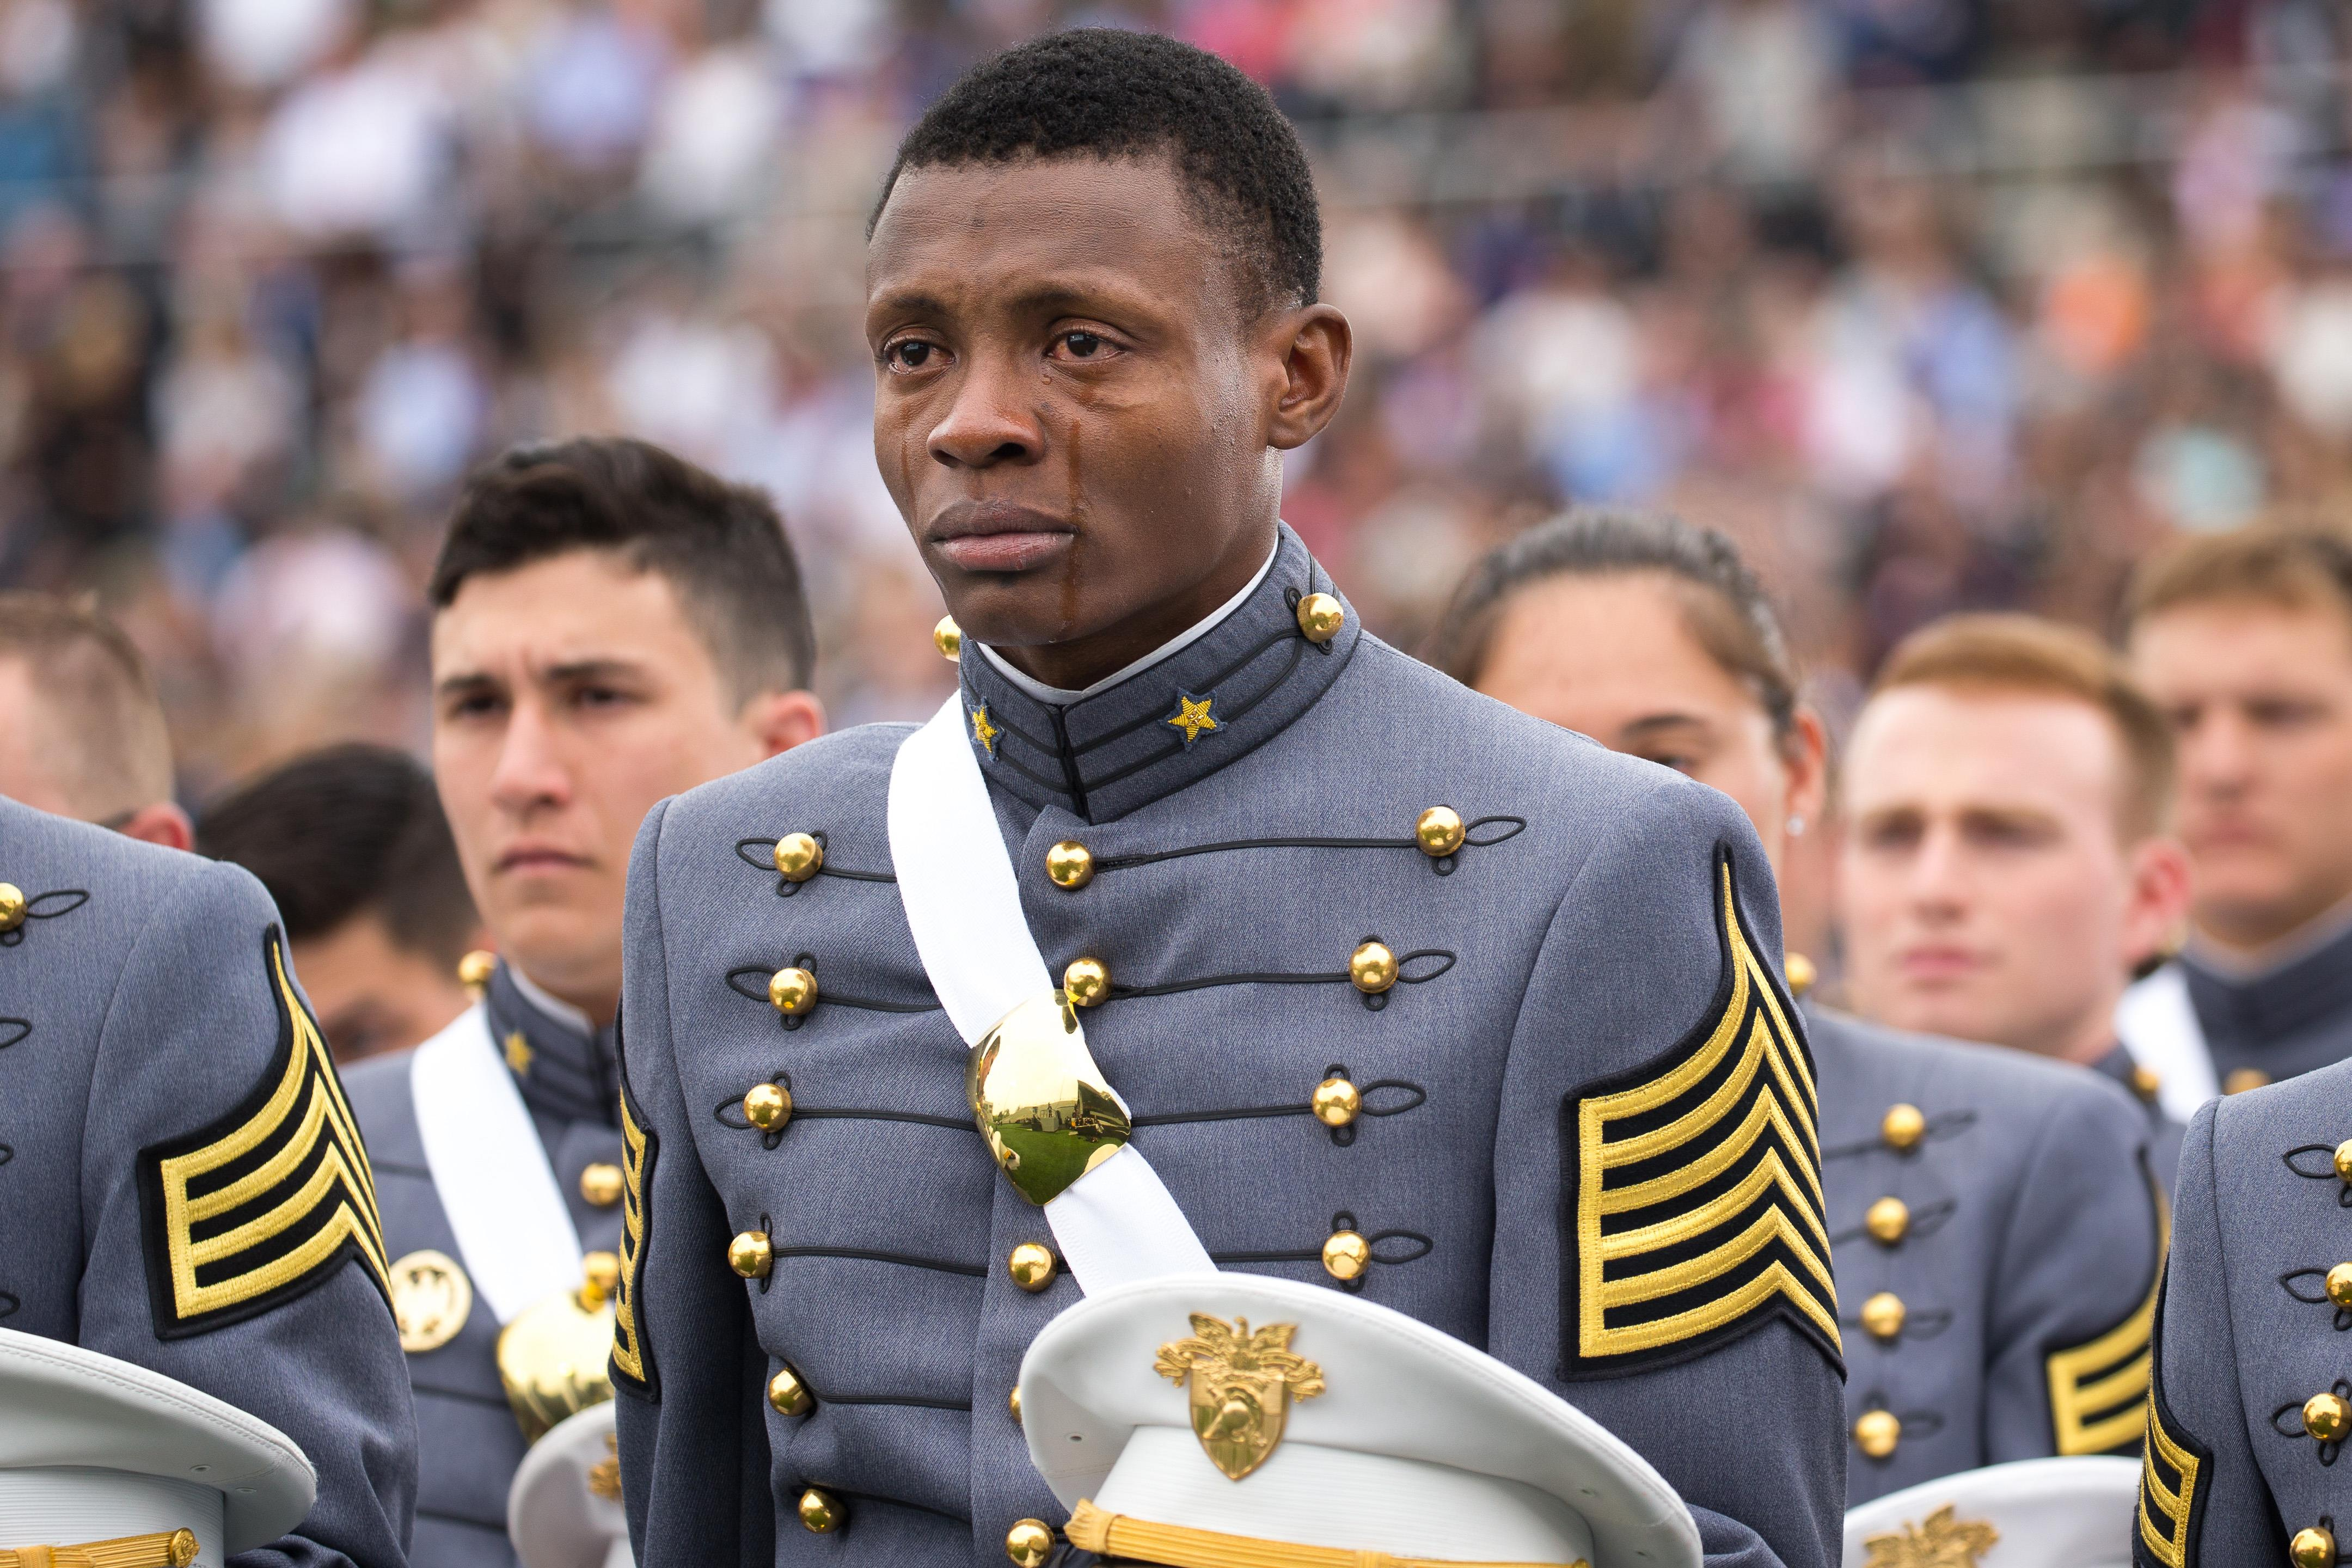 Us department of defense photos photo gallery cadet alix idrache sheds tears of joy during the commencement for the us military academys class sciox Gallery